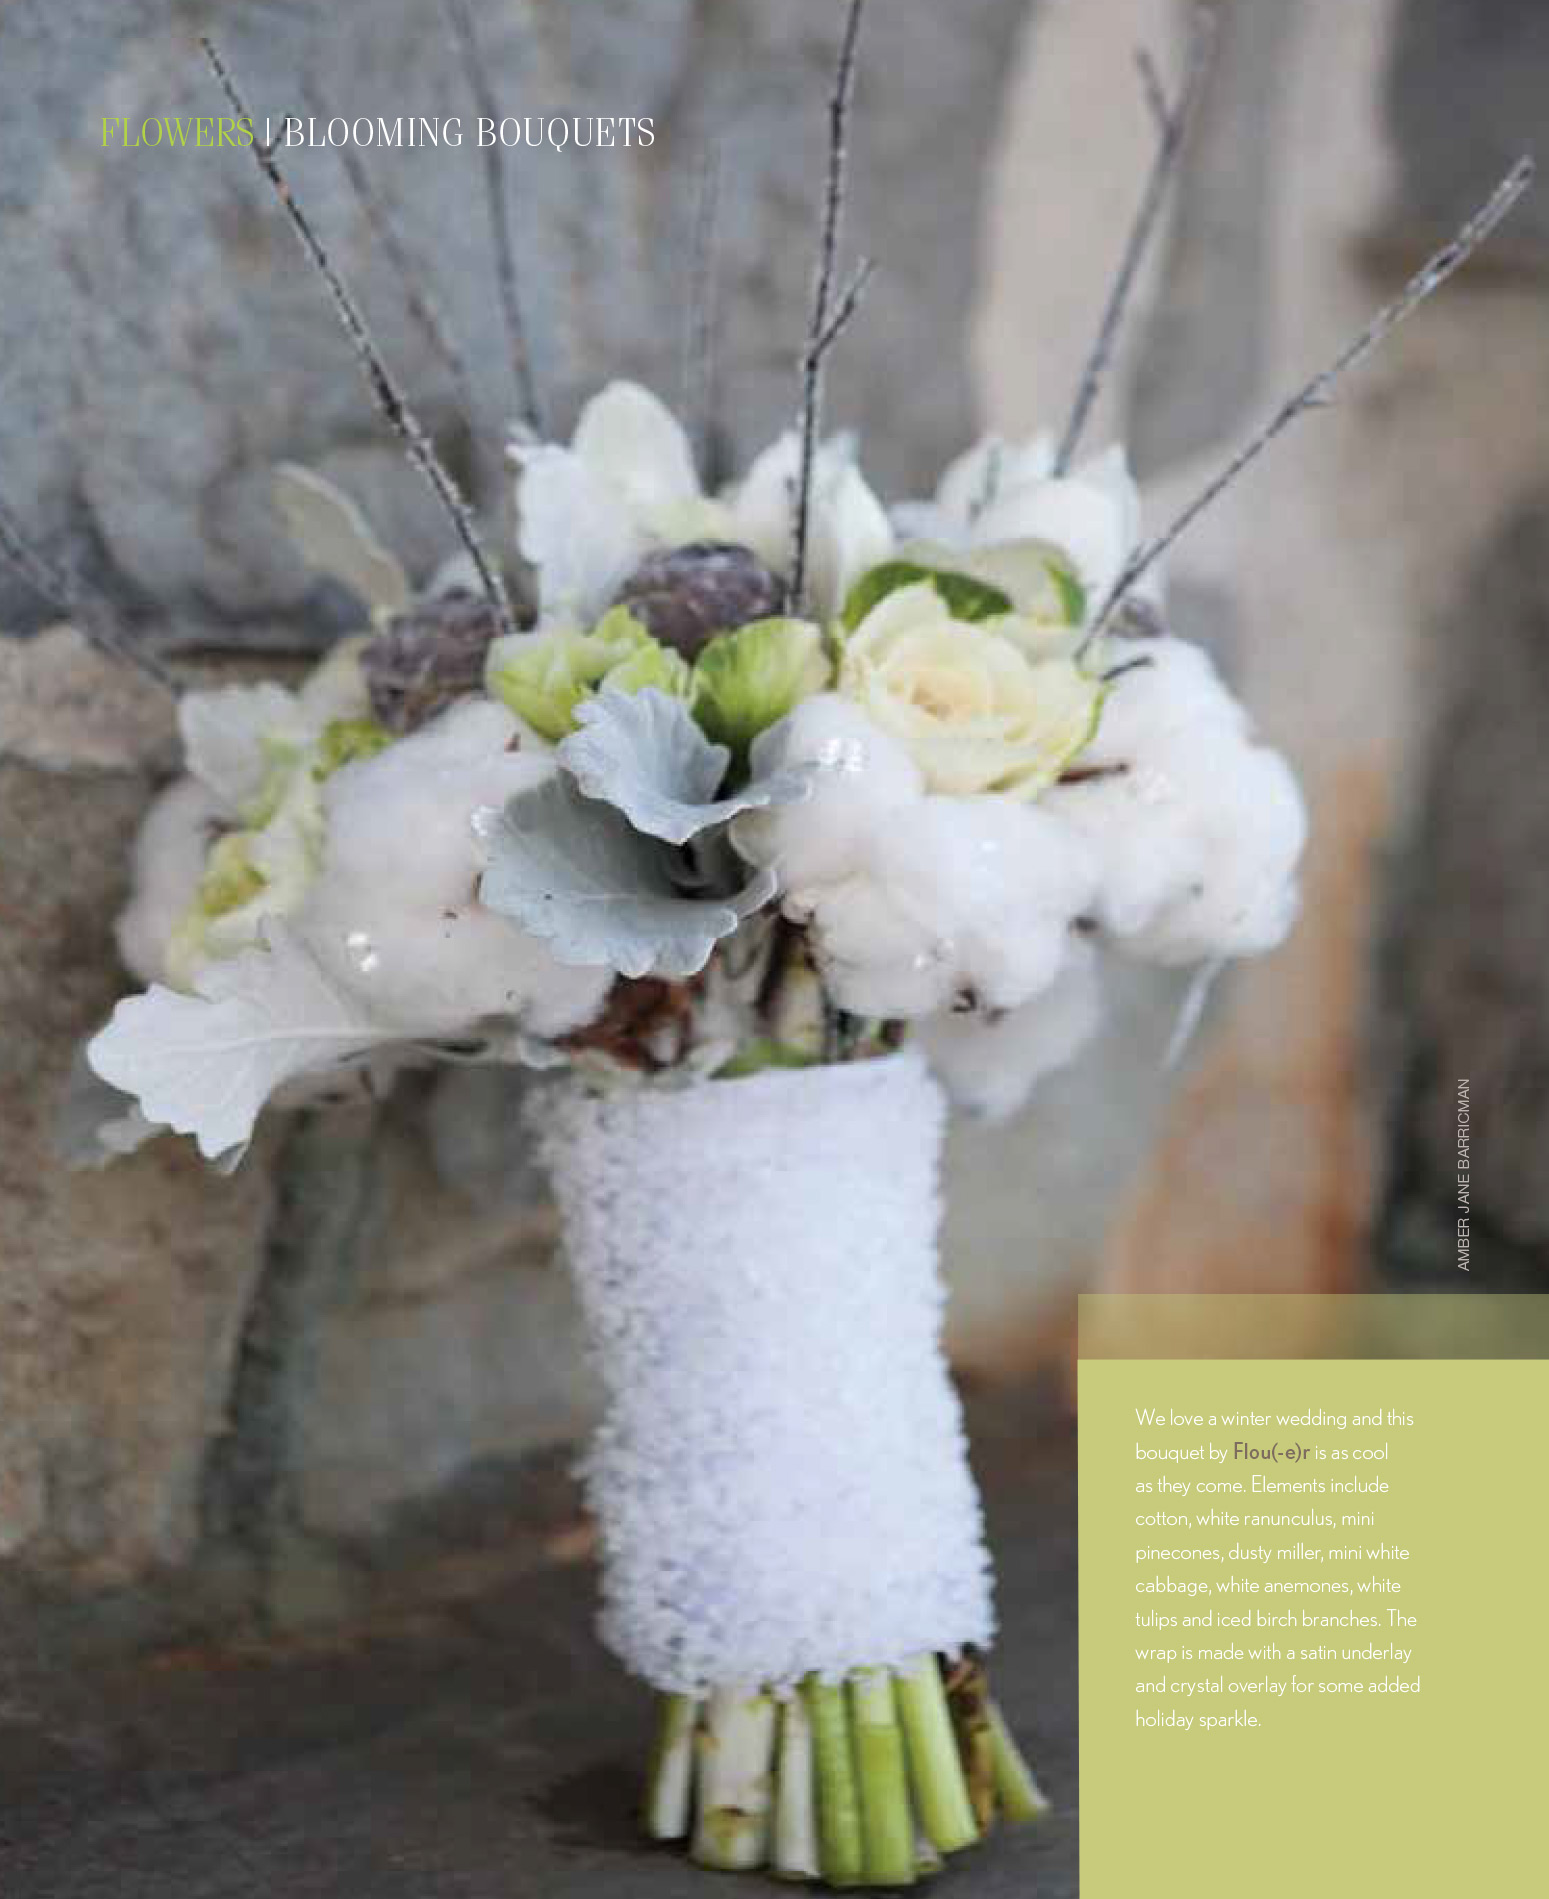 Southern New England Weddings 2014 - Blooming Bouquets